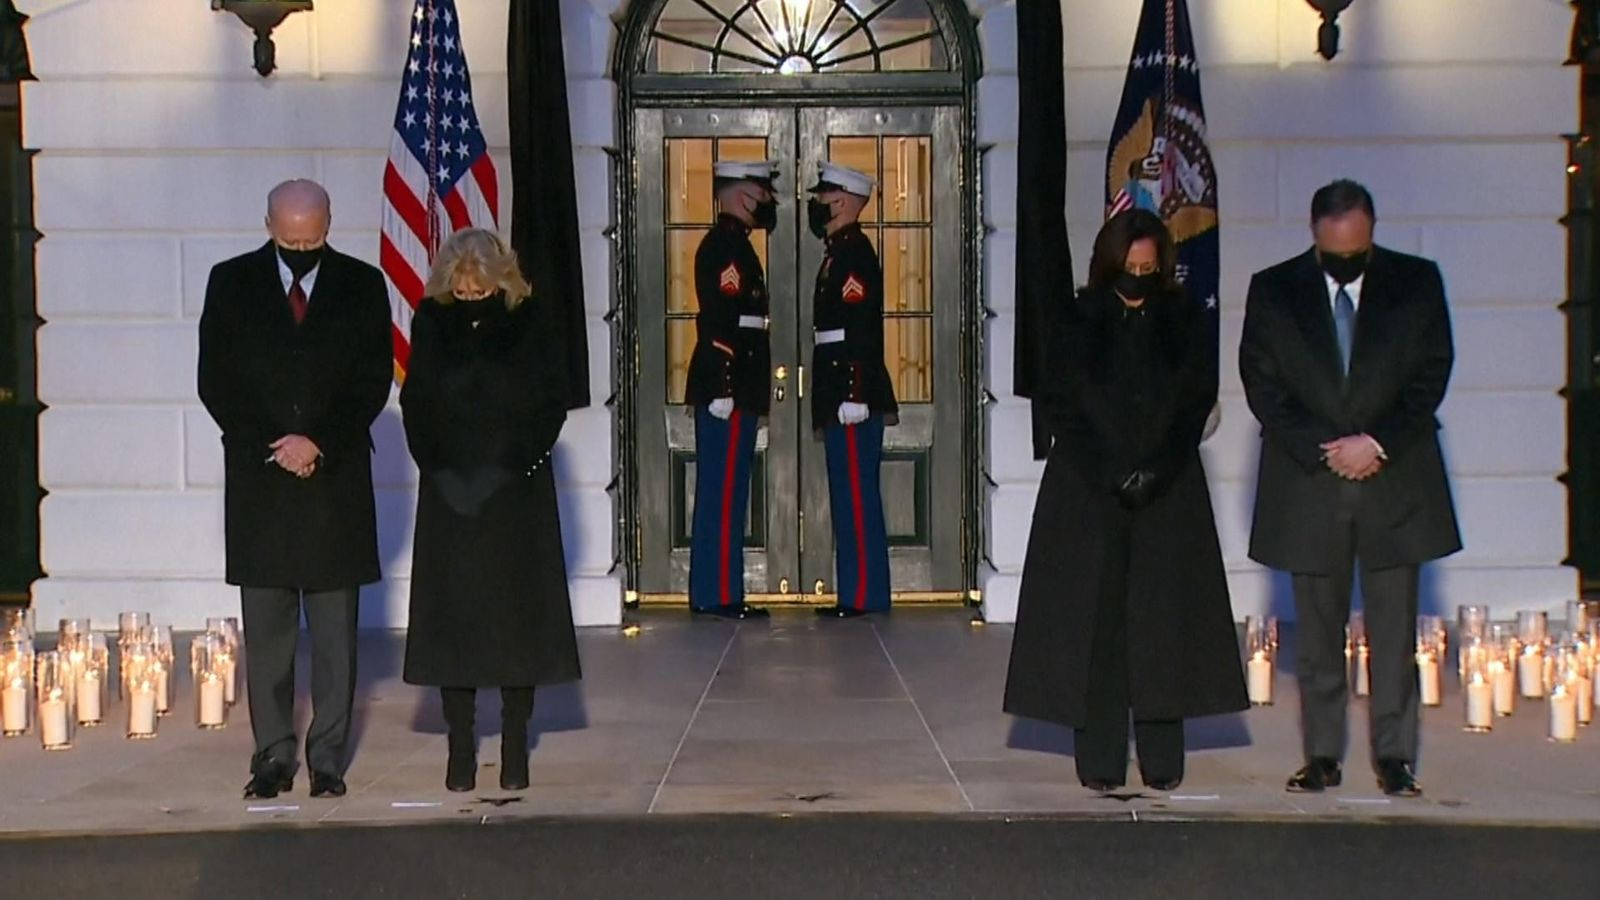 COVID-19: Biden leads candlelit ceremony for COVID victims as US passes half 1,000,000 deaths